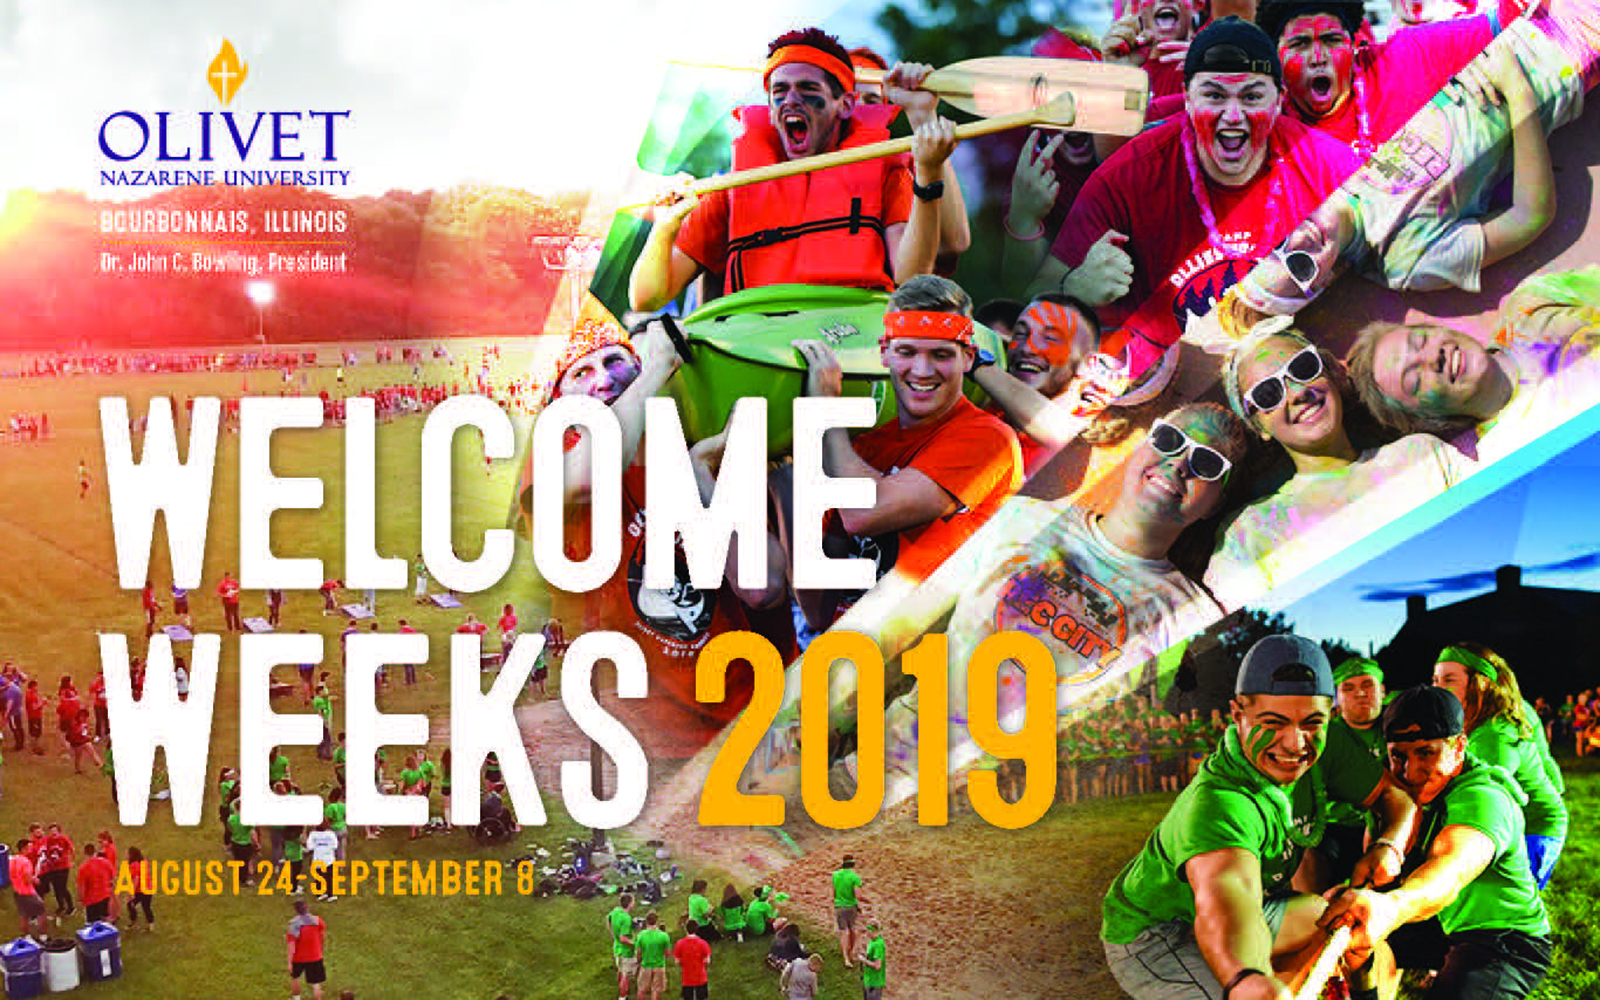 Olivet_student_welcome_life_activities_fall_2019_web.jpg